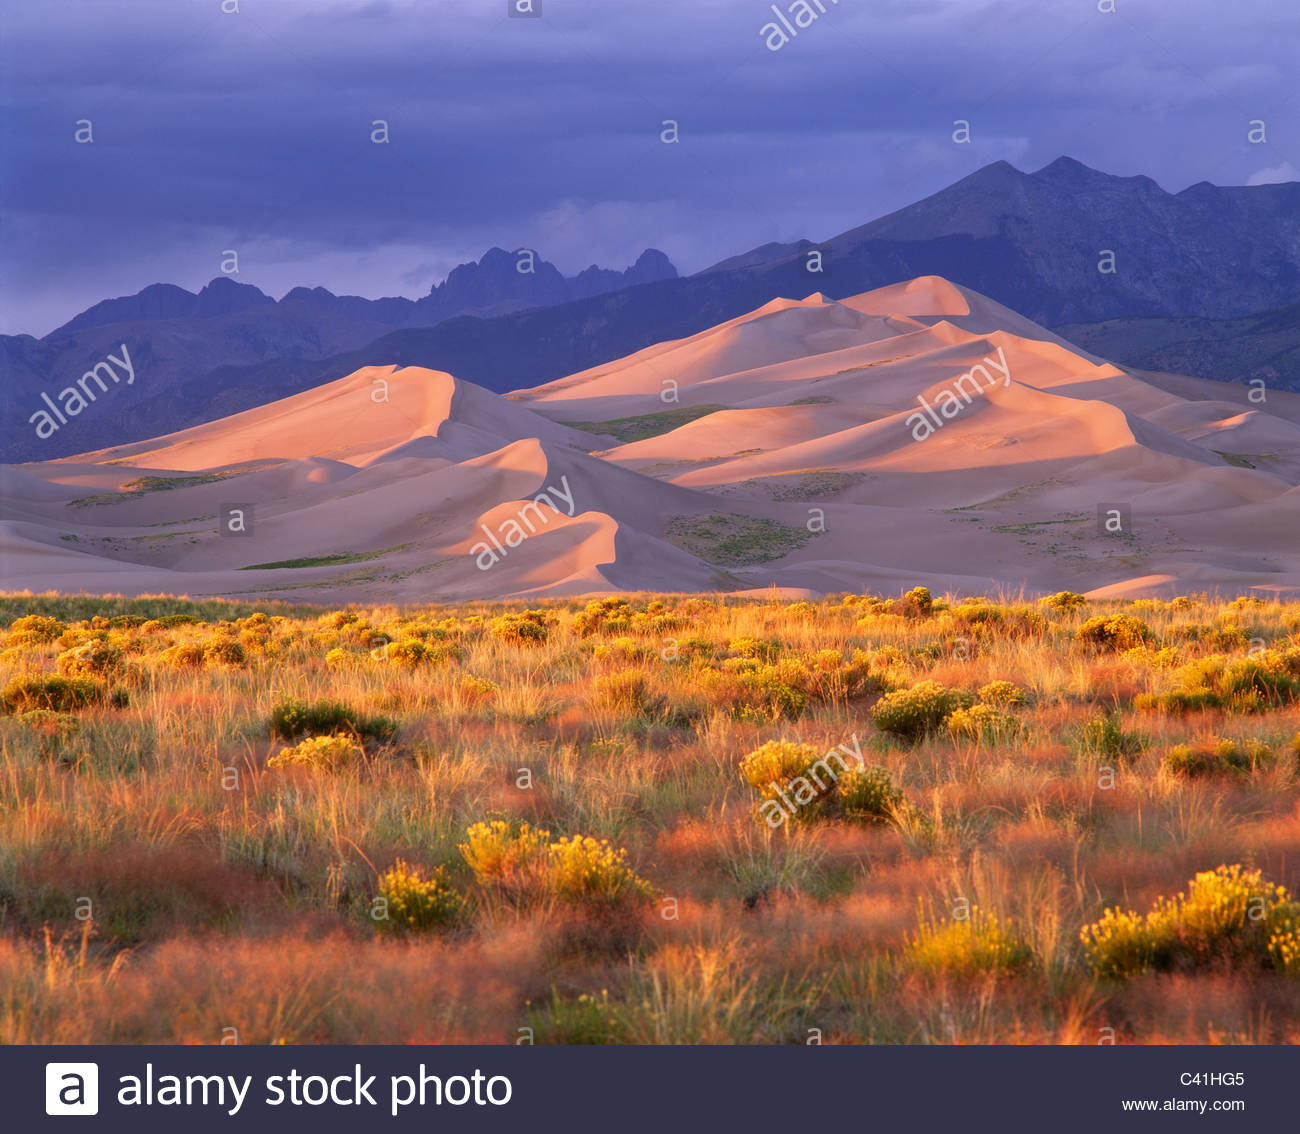 Great Sand Dunes National Park and Preserve, Colorado. - Stock Image